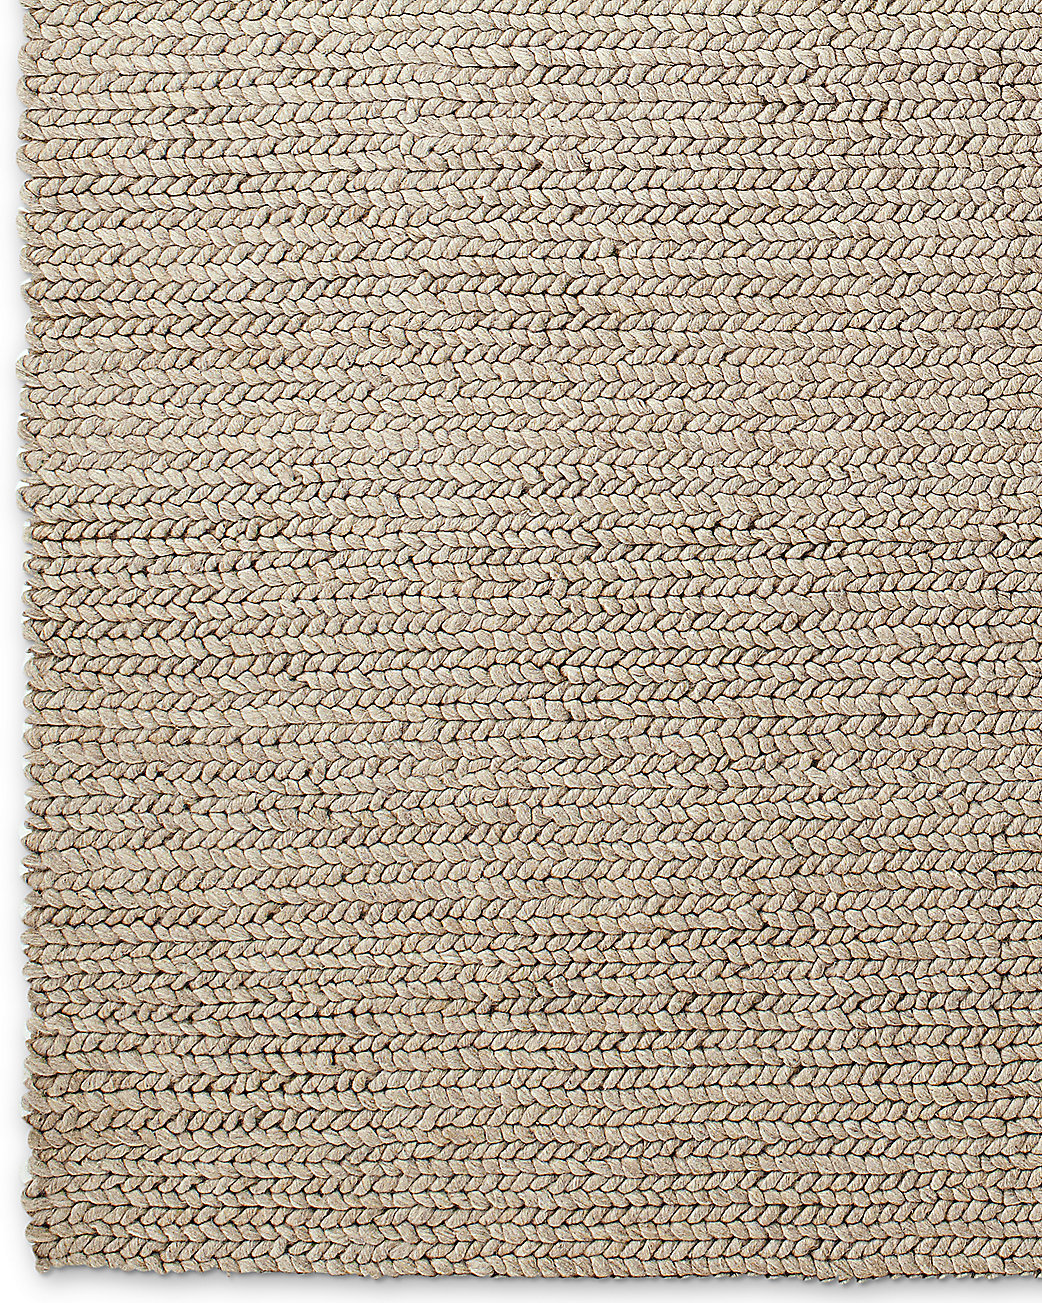 Chunky Braided Wool Rug Oatmeal